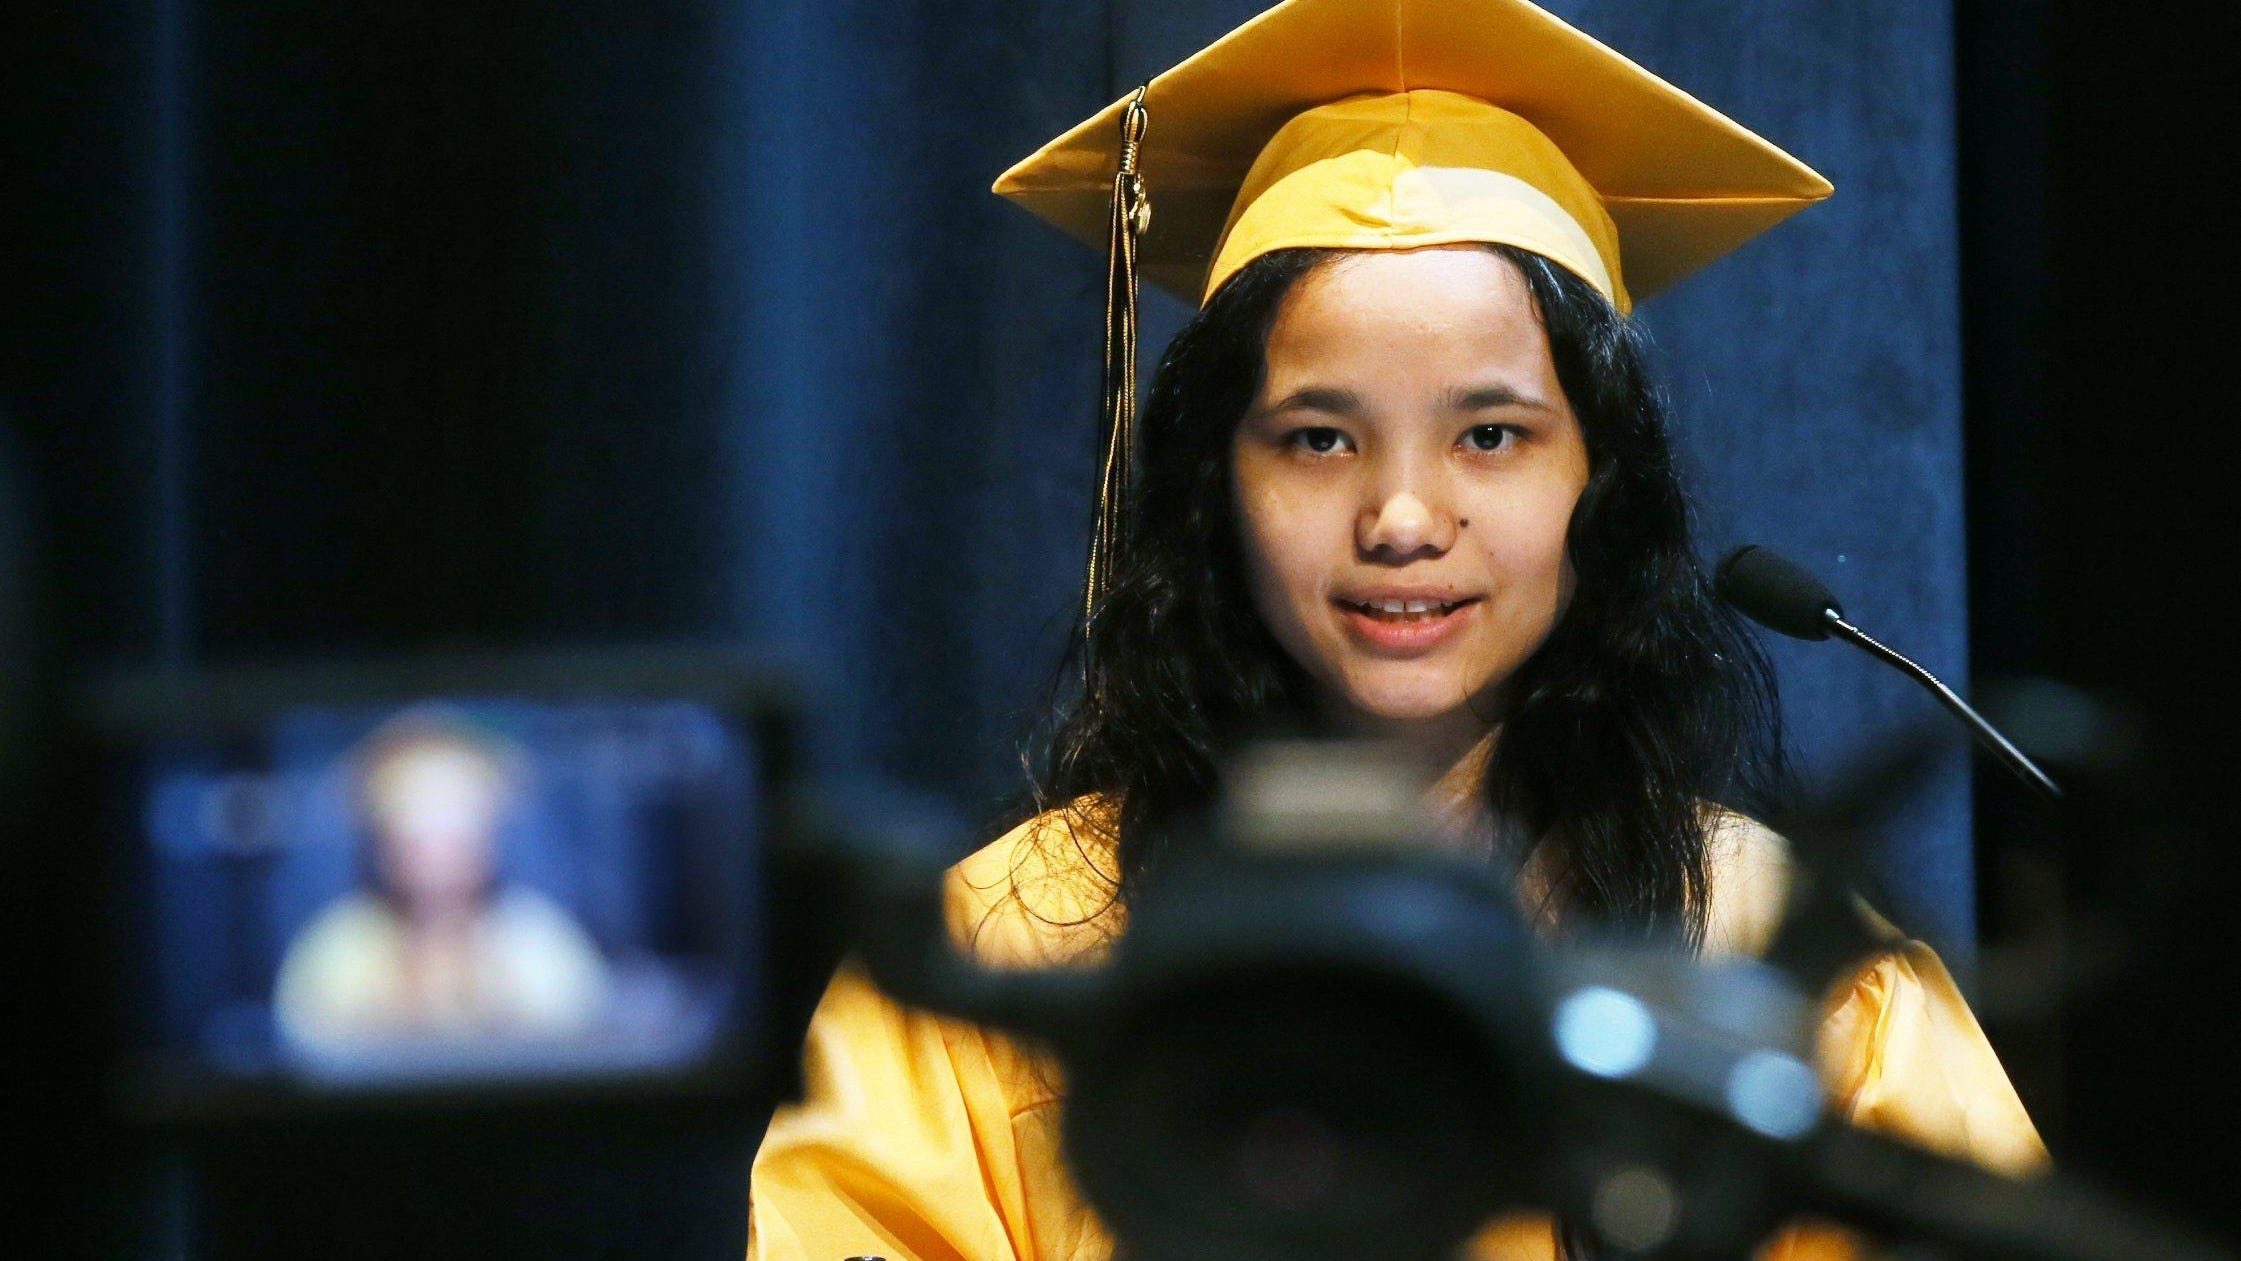 Many teachers and students are long to reconnect in classrooms. Alisha Tamang, North High School Class of 2020 valedictorian, urged her classmates to learn and grow as they experience life, even as the final months of their senior year was upended by the pandemic.